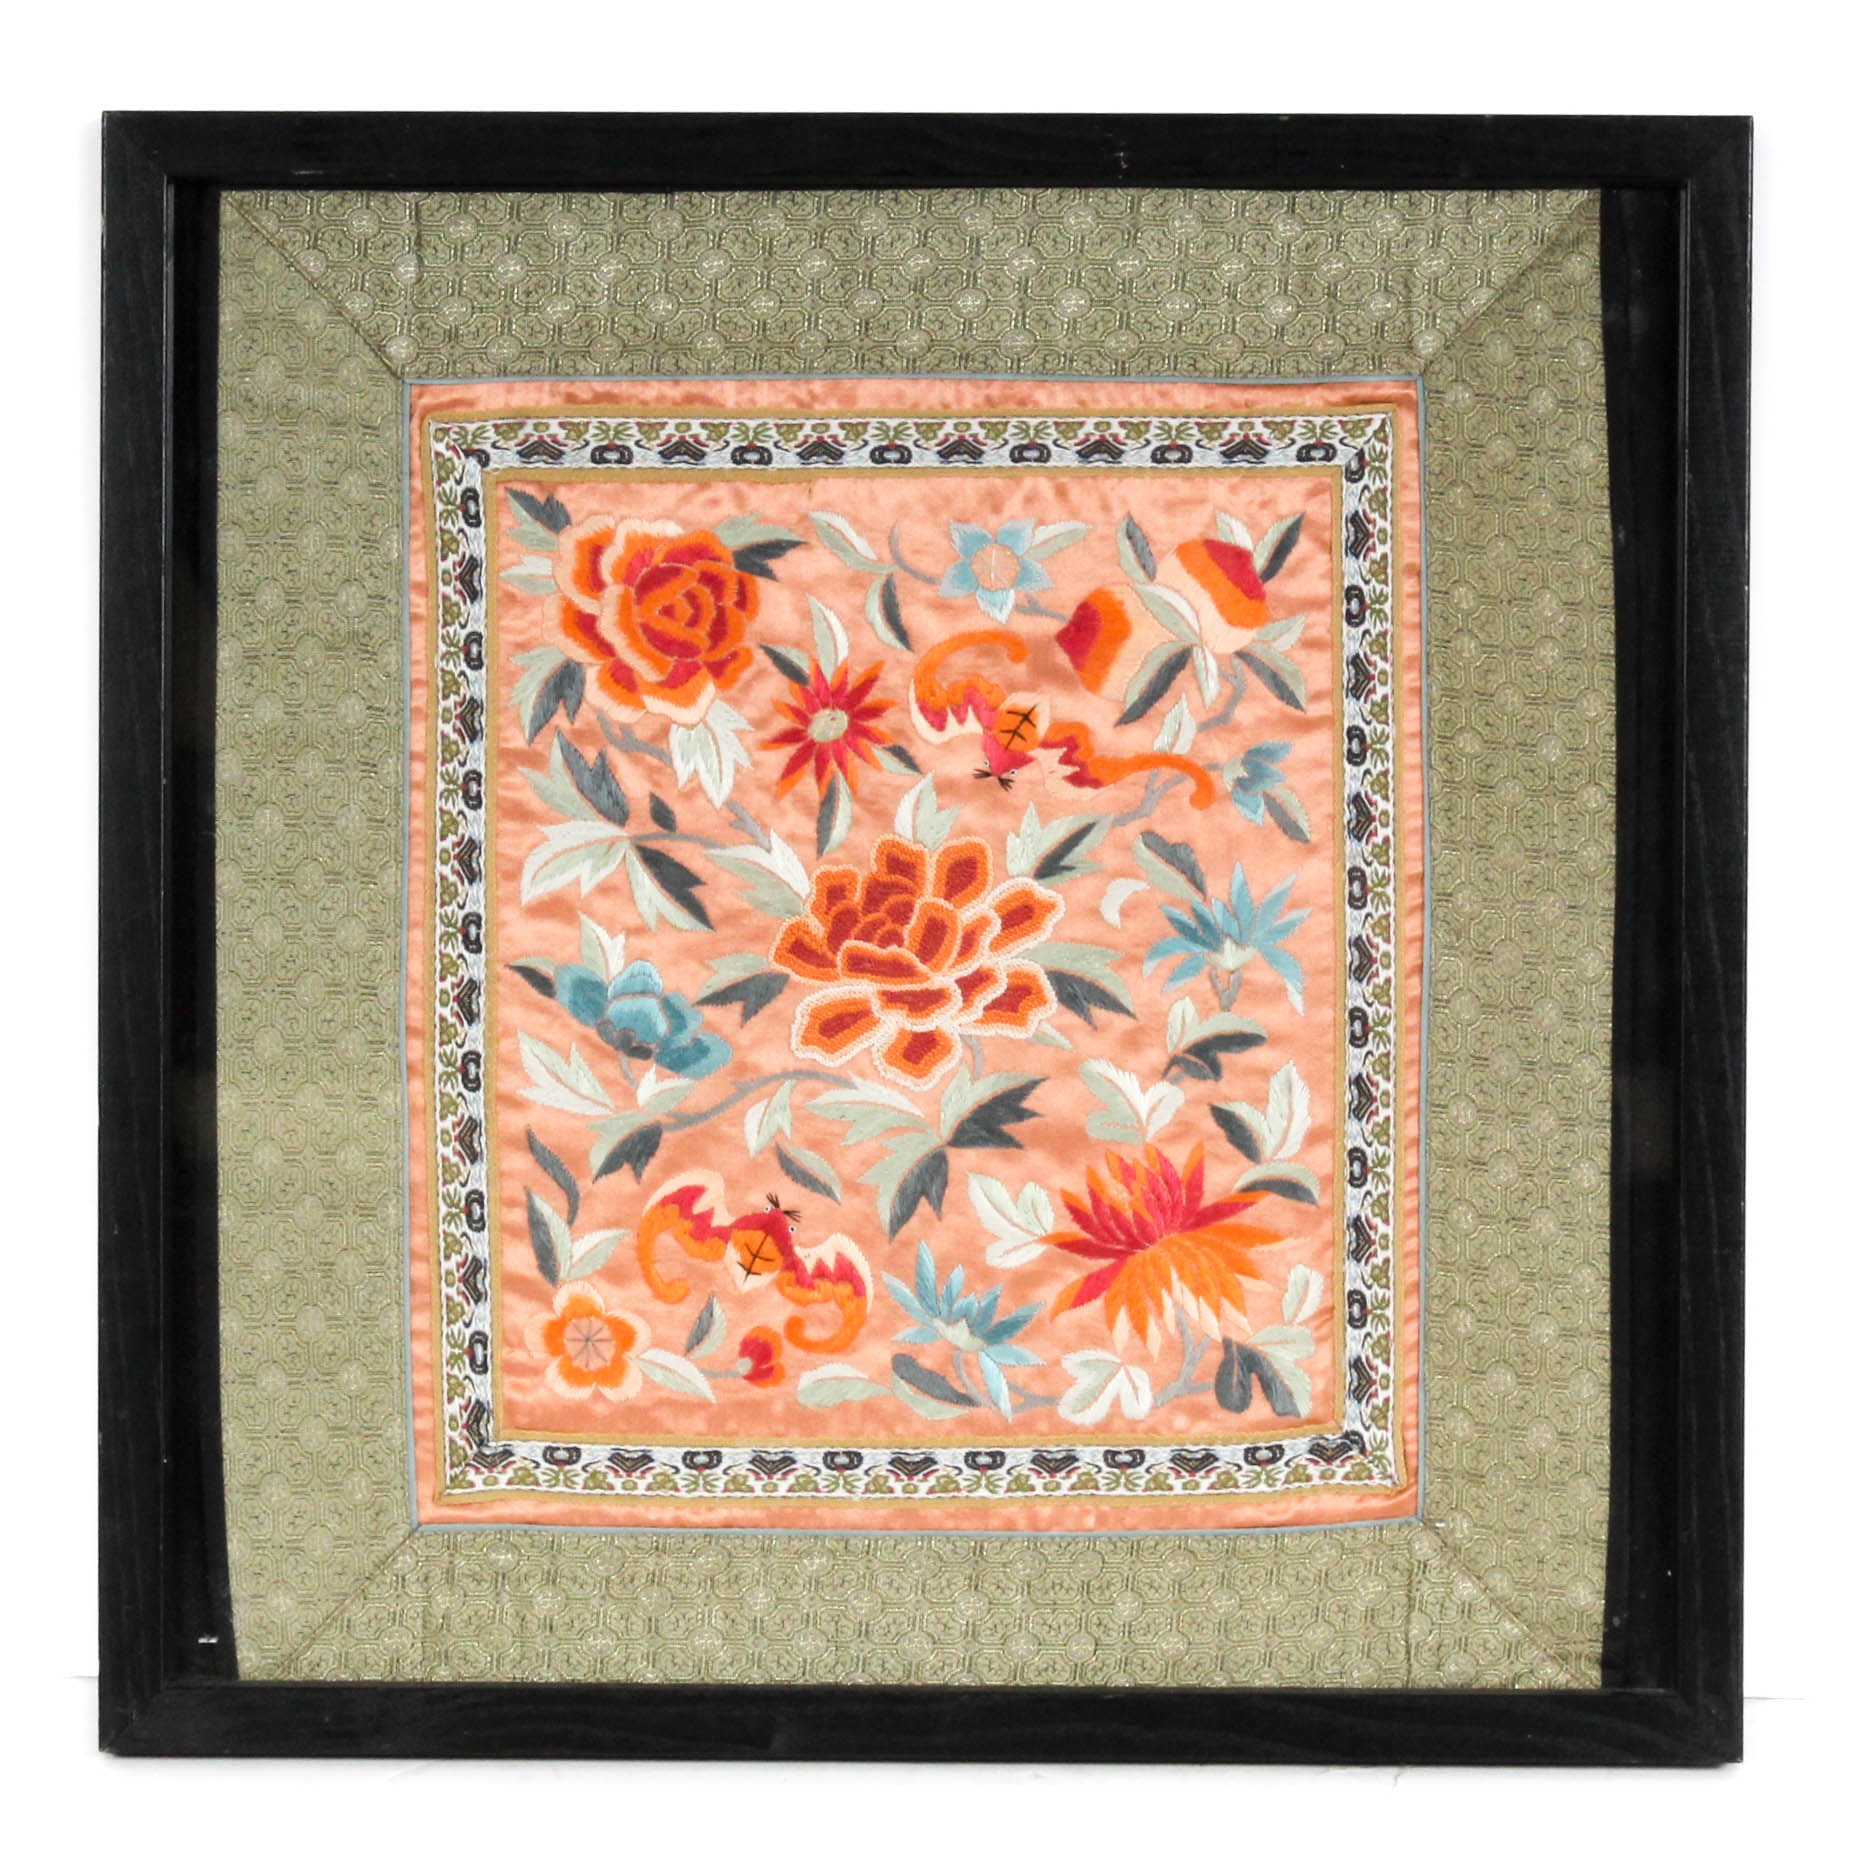 Chinese Hand-Embroidered Silk Textile